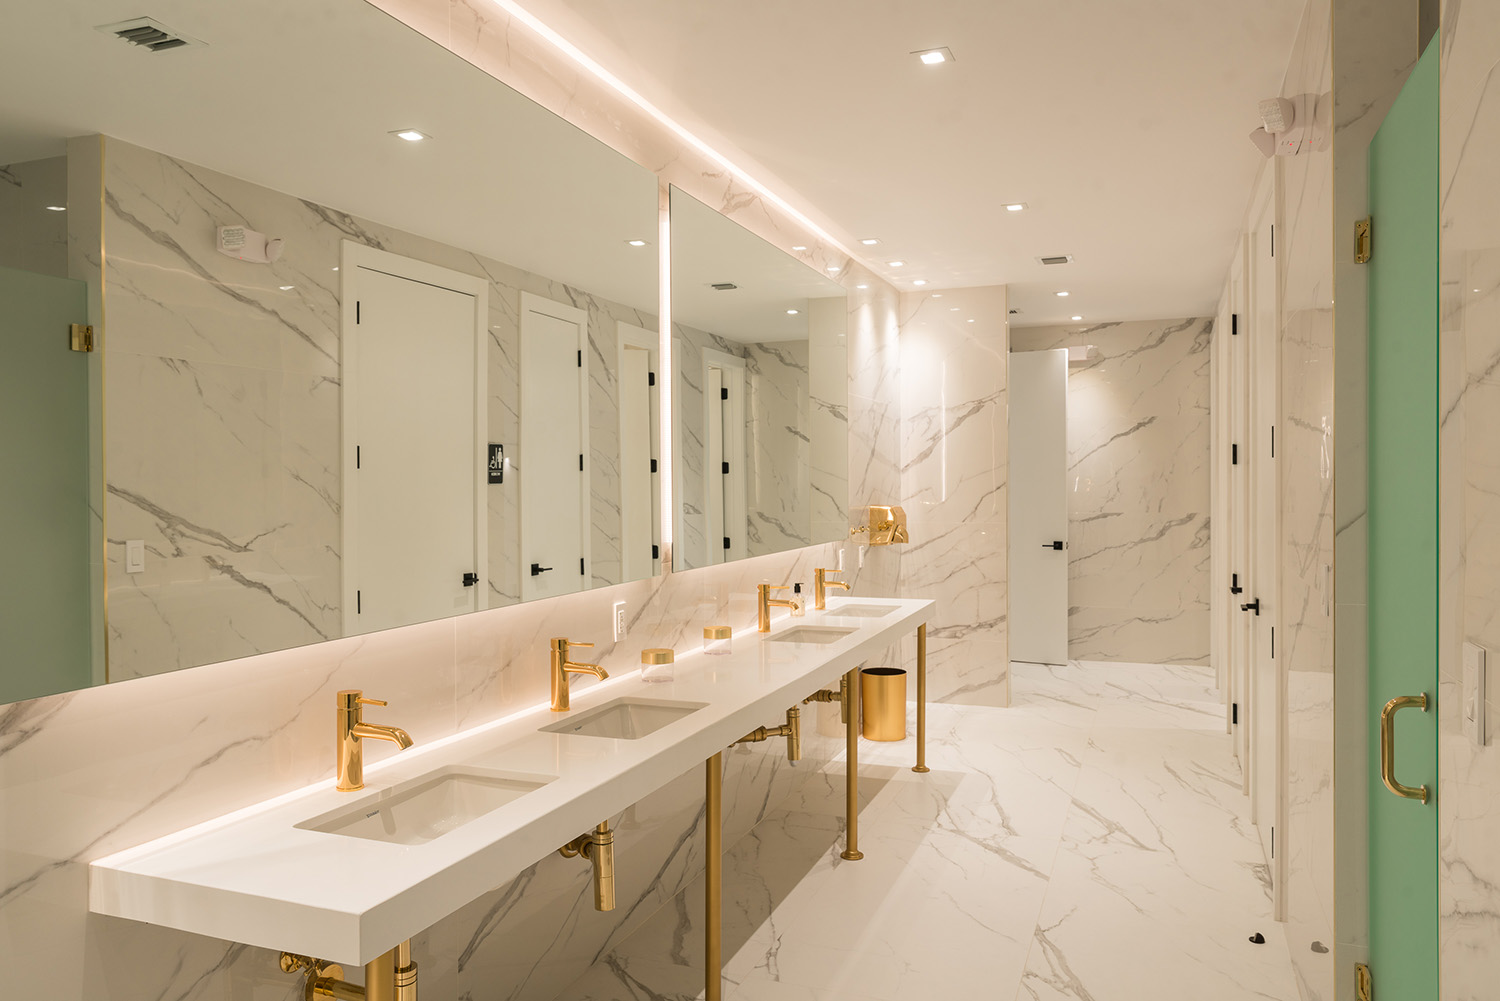 Luxe amenities include marbled restrooms, showers and lockers.